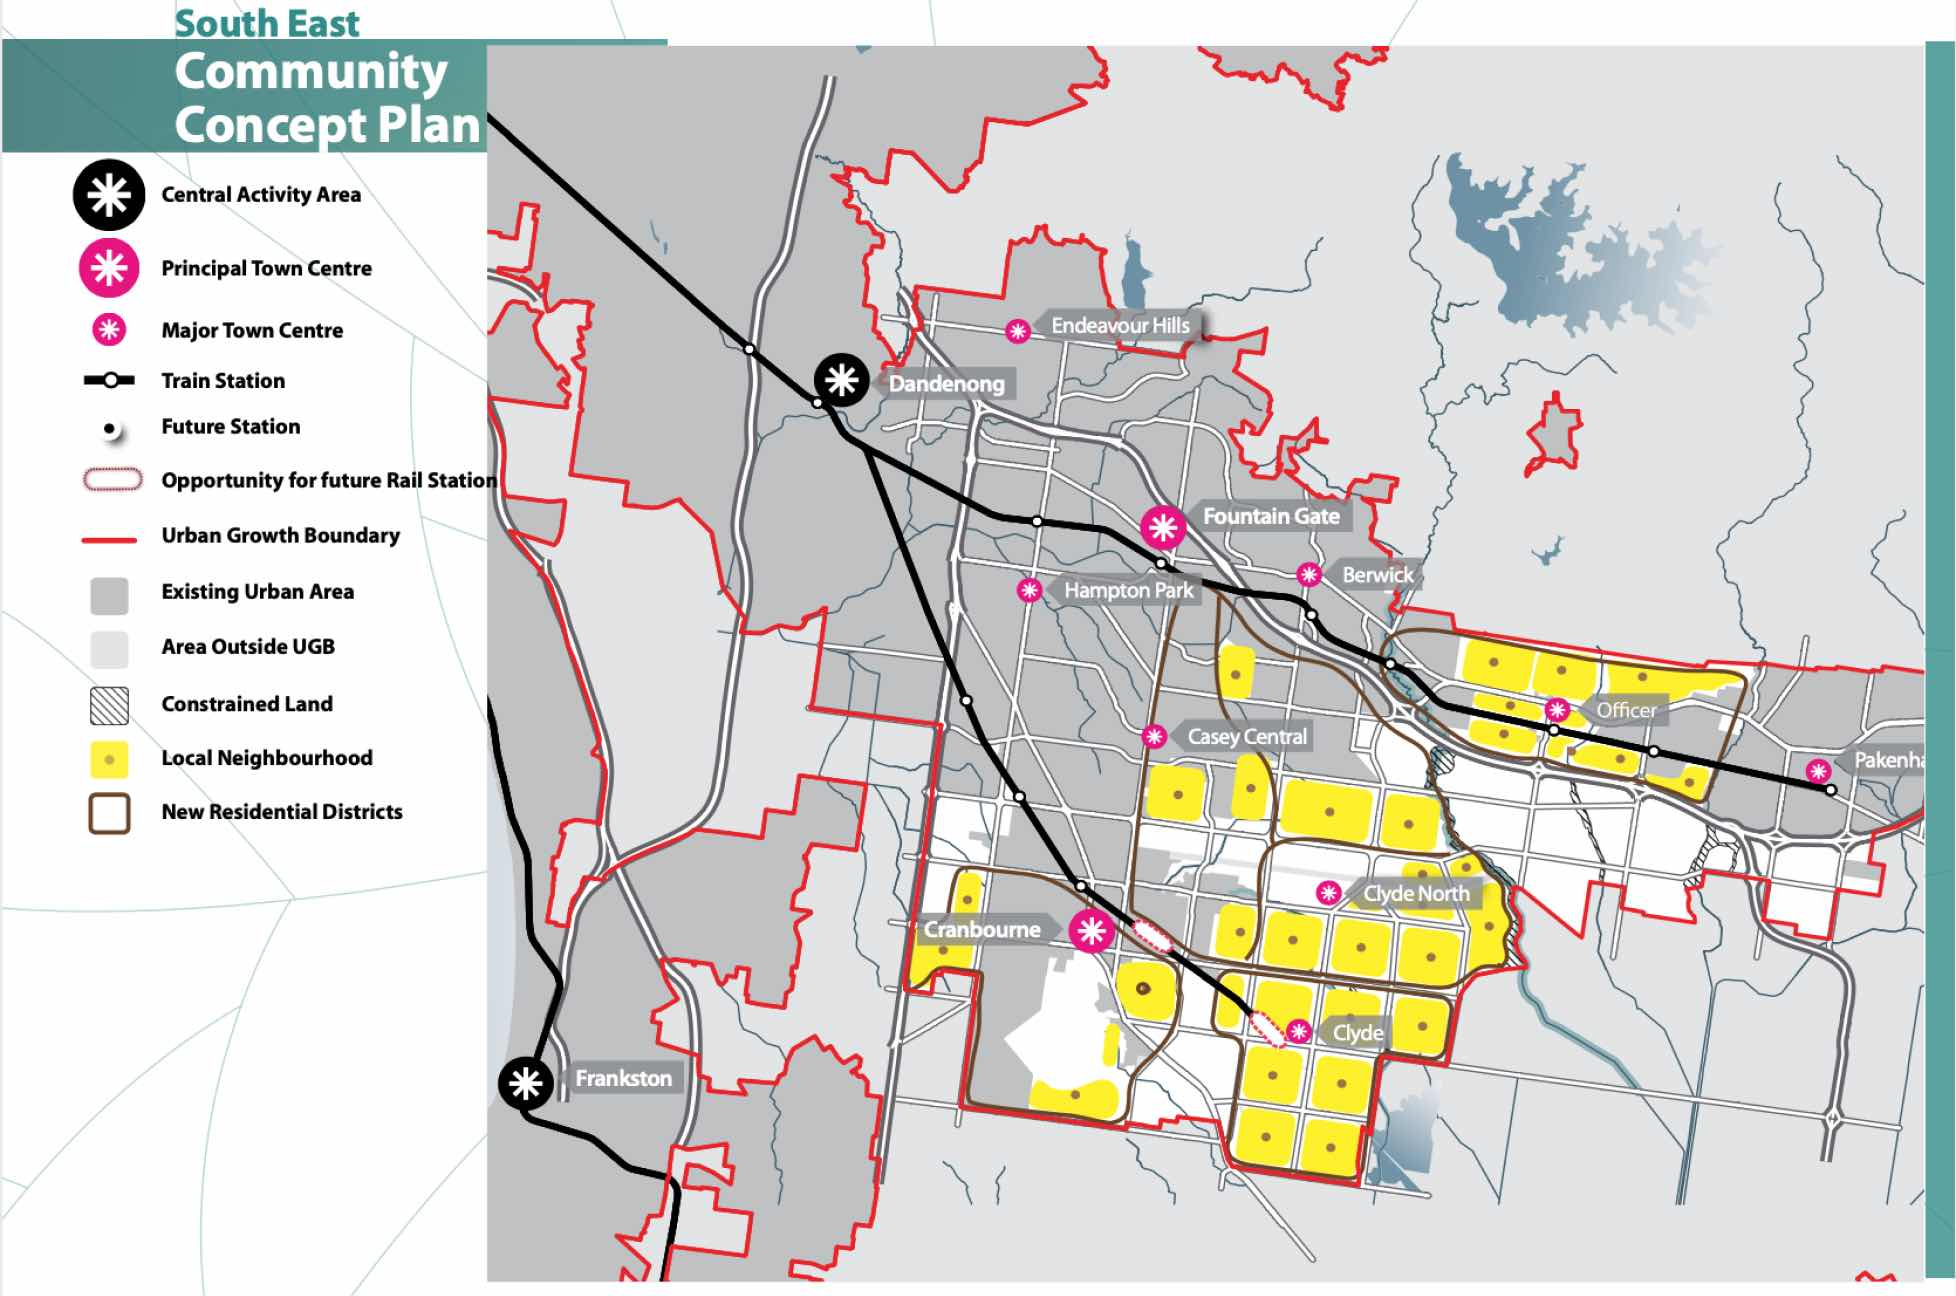 Melbourne South East Growth Corridor Community Concept Plan - vpa.vic.gov.au